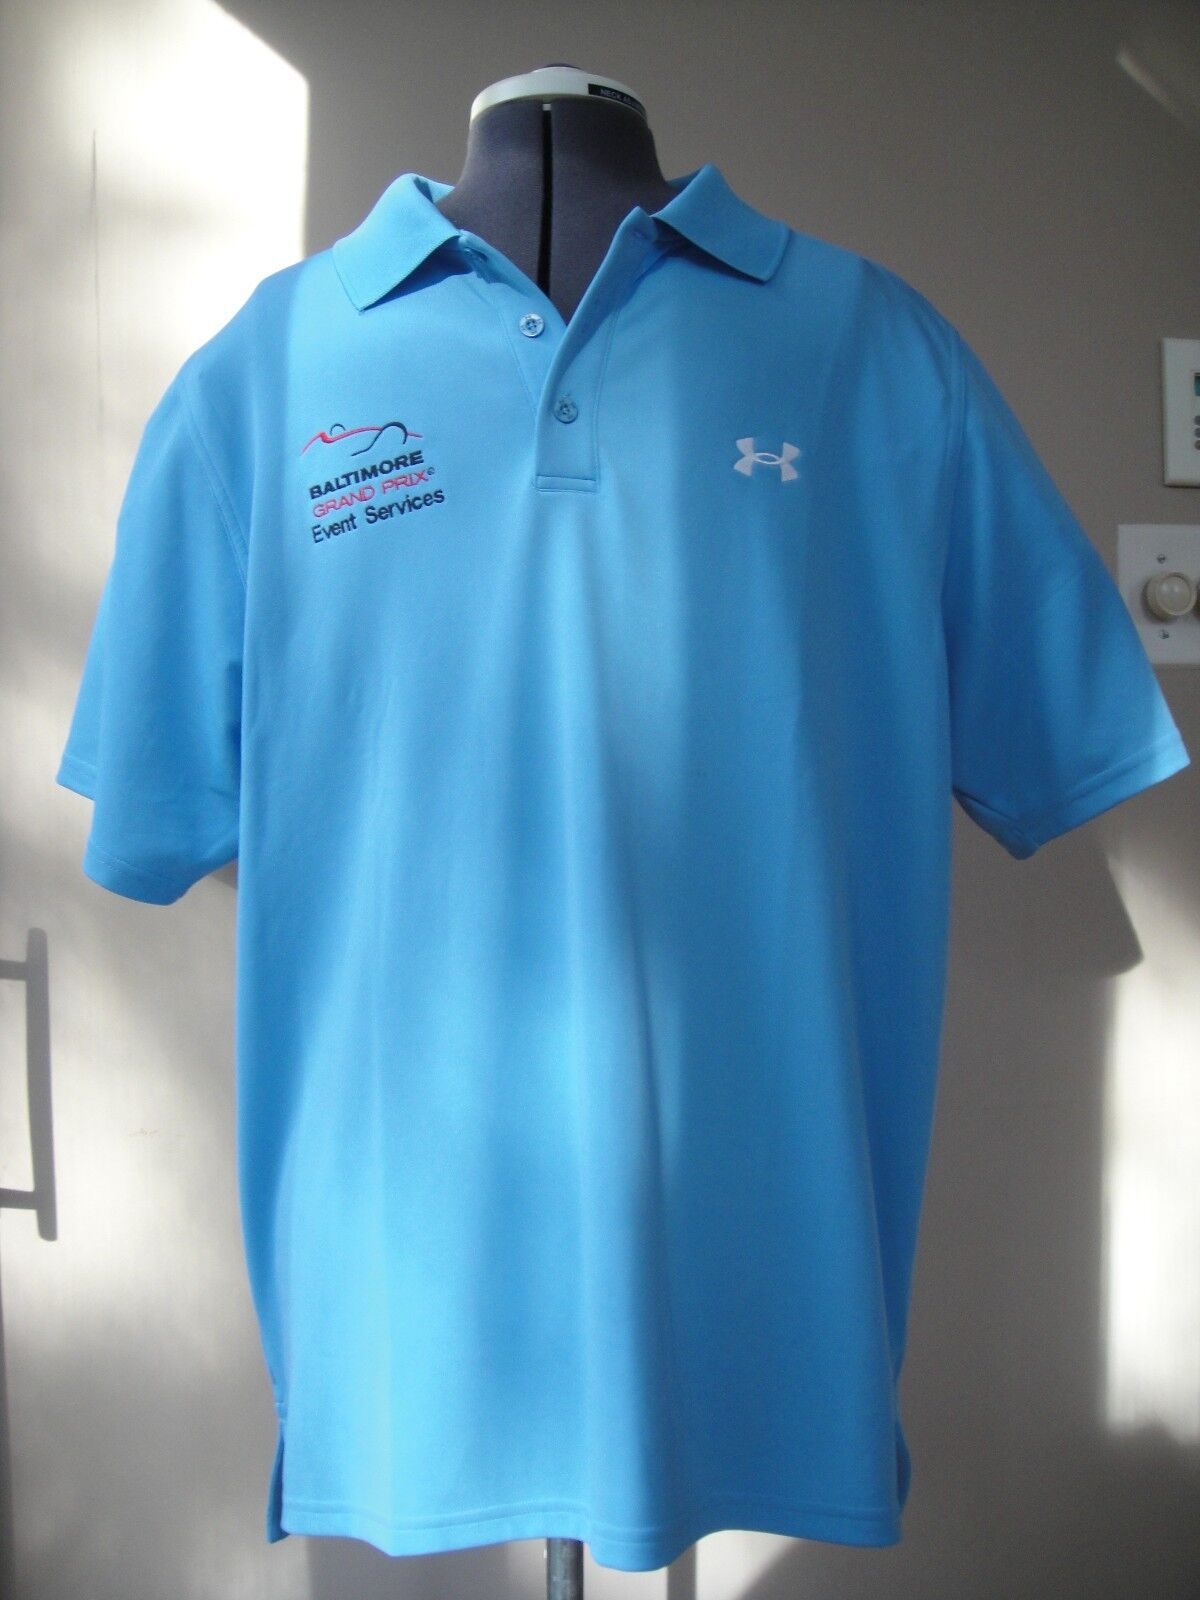 Lot 2 of 2 Lot Tommy Bahama Short Sleeve Polo Rugby Shirts Large Minimal Wear NICE c61a2b